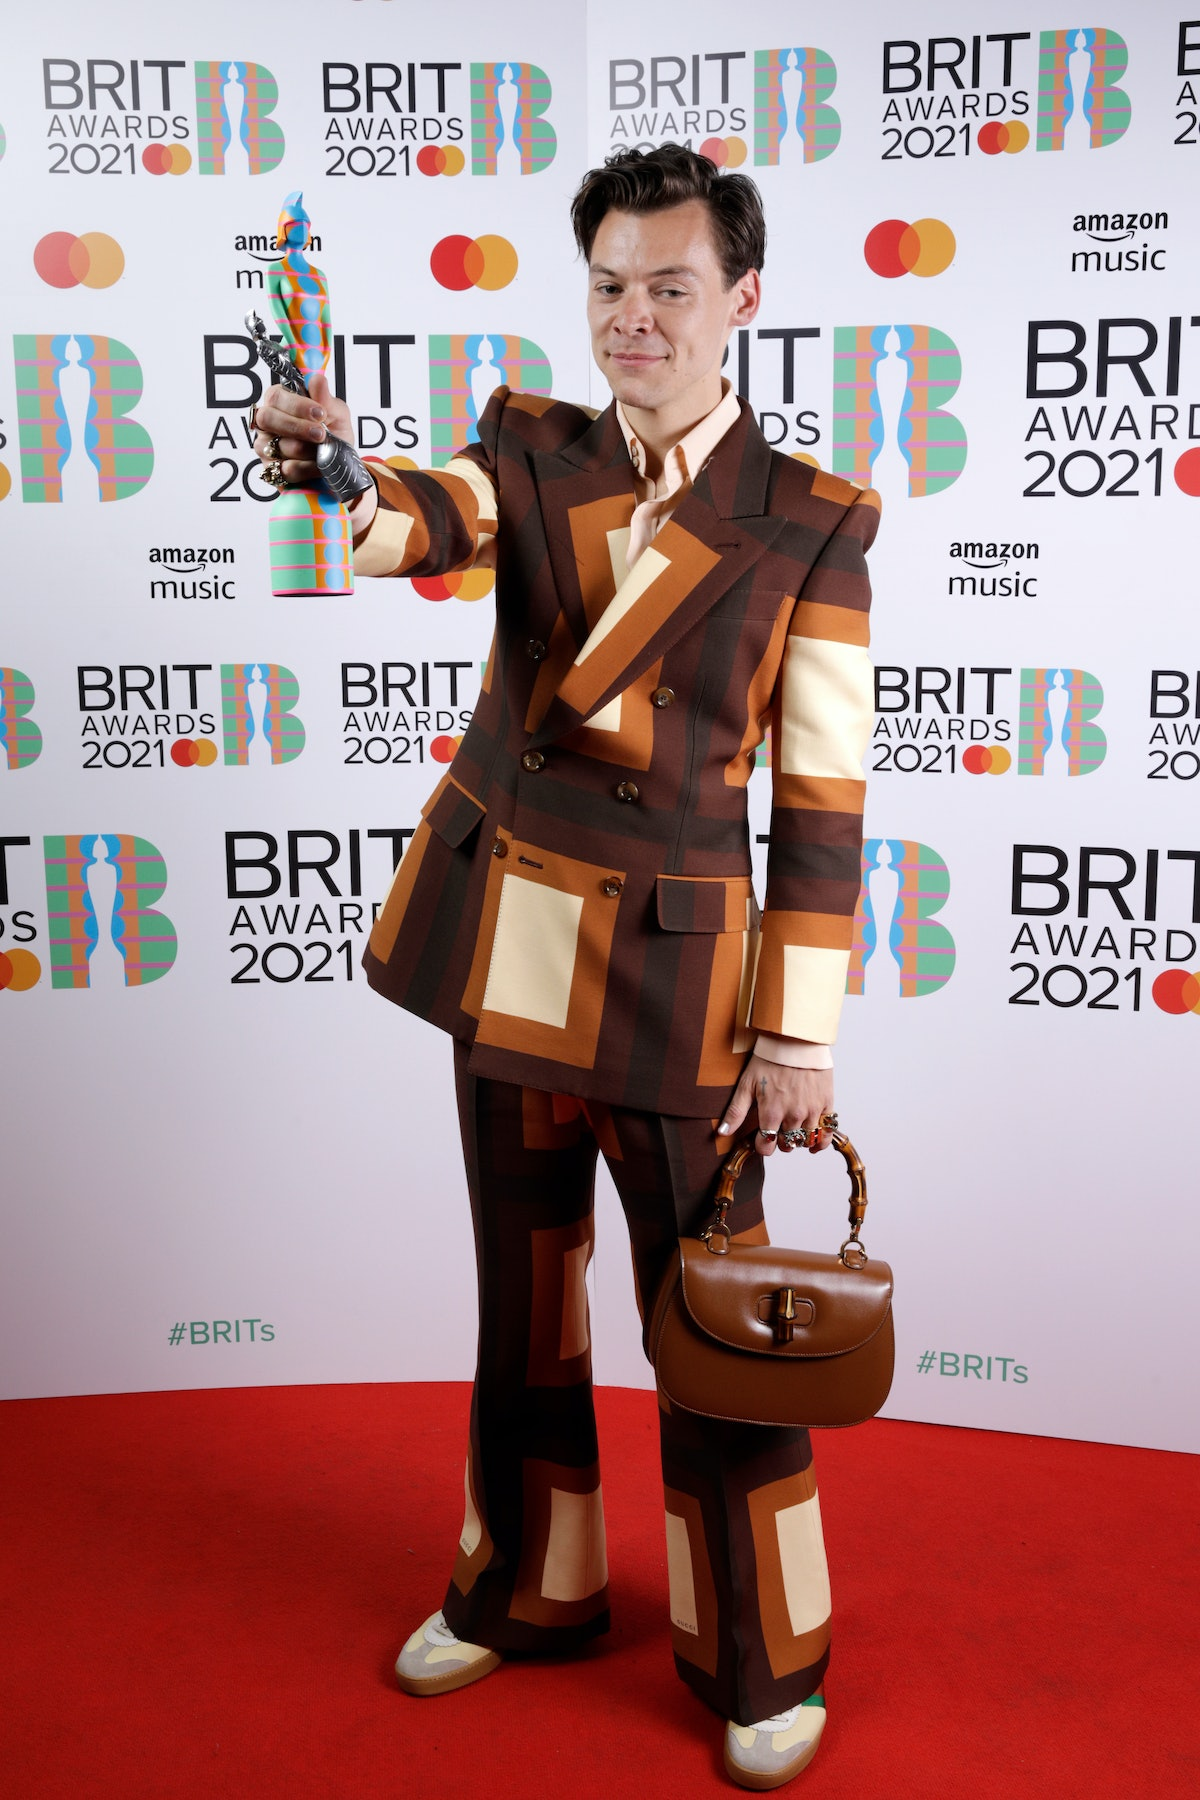 harry styles carrying his BRIT Award